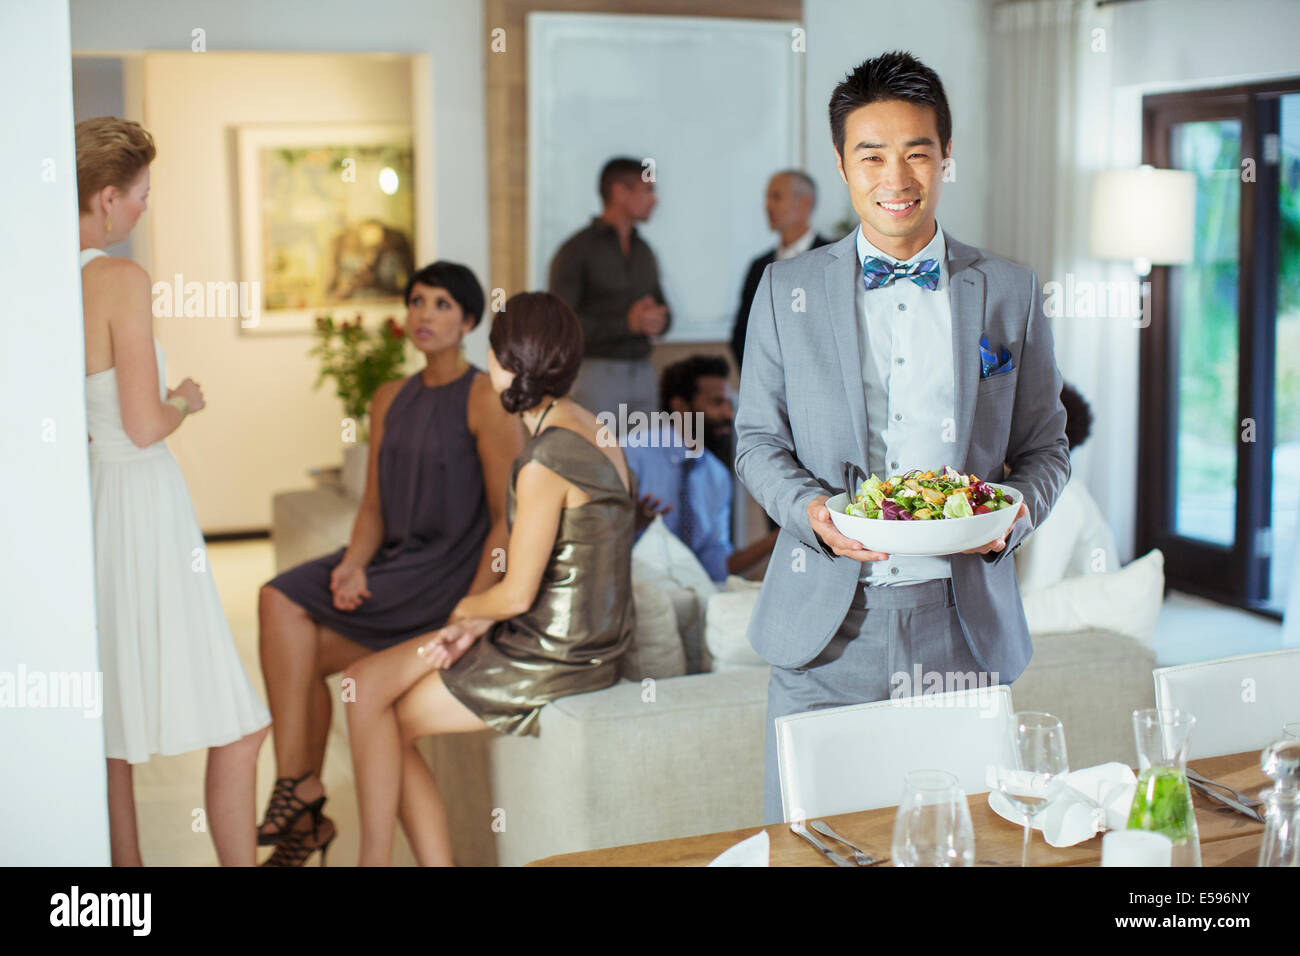 Man serving food at dinner party - Stock Image